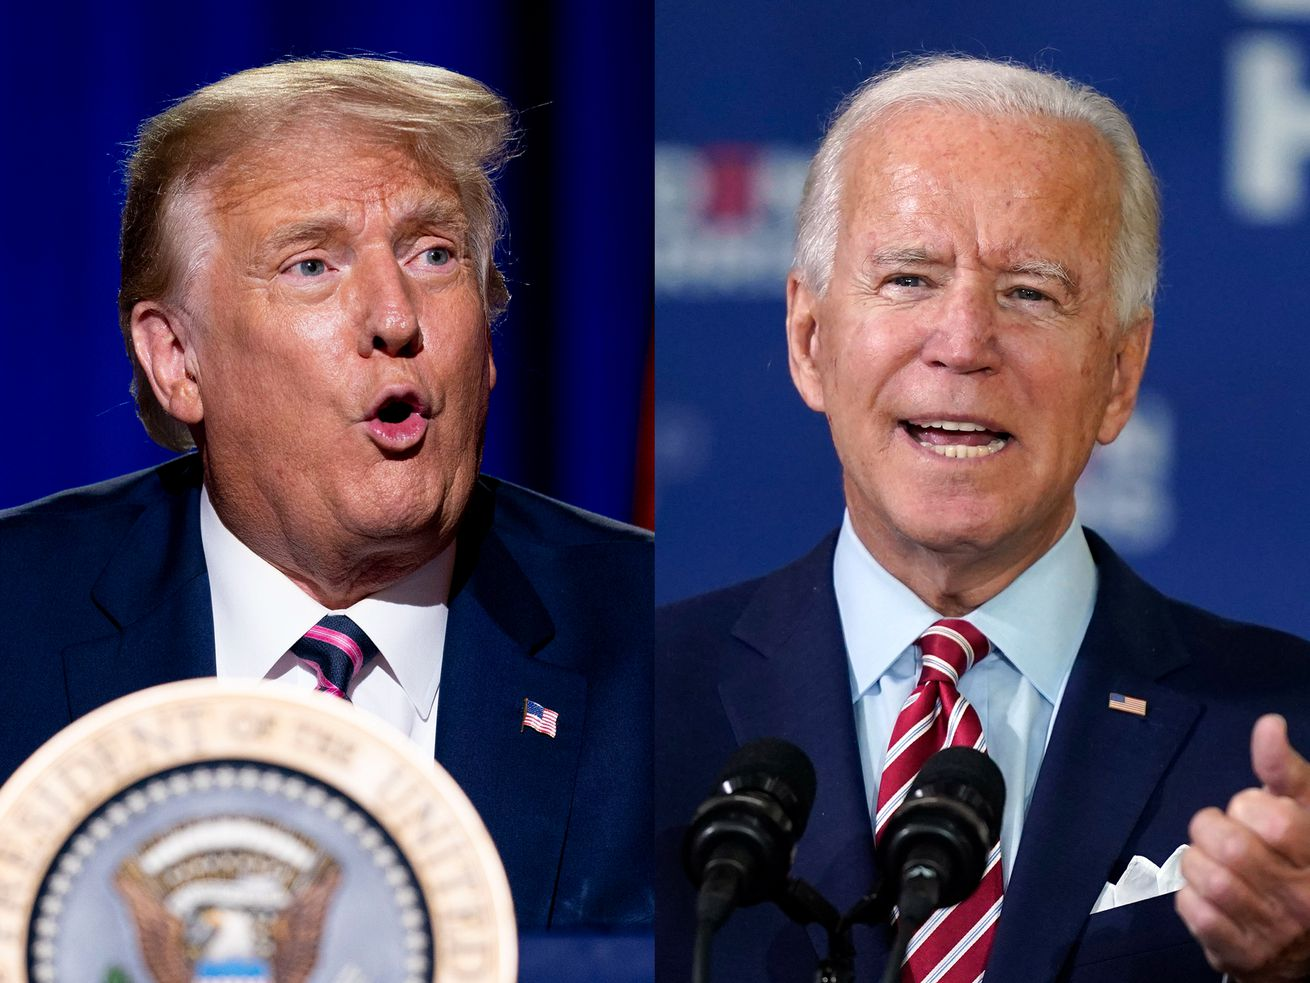 President Donald Trump, left, speaks on Monday, Sept. 14, 2020, in Phoenix, Ariz., while Democratic presidential candidate former Vice President Joe Biden speaks on Tuesday, Sept. 15, 2020, in Tampa, Fla., in this composite image.